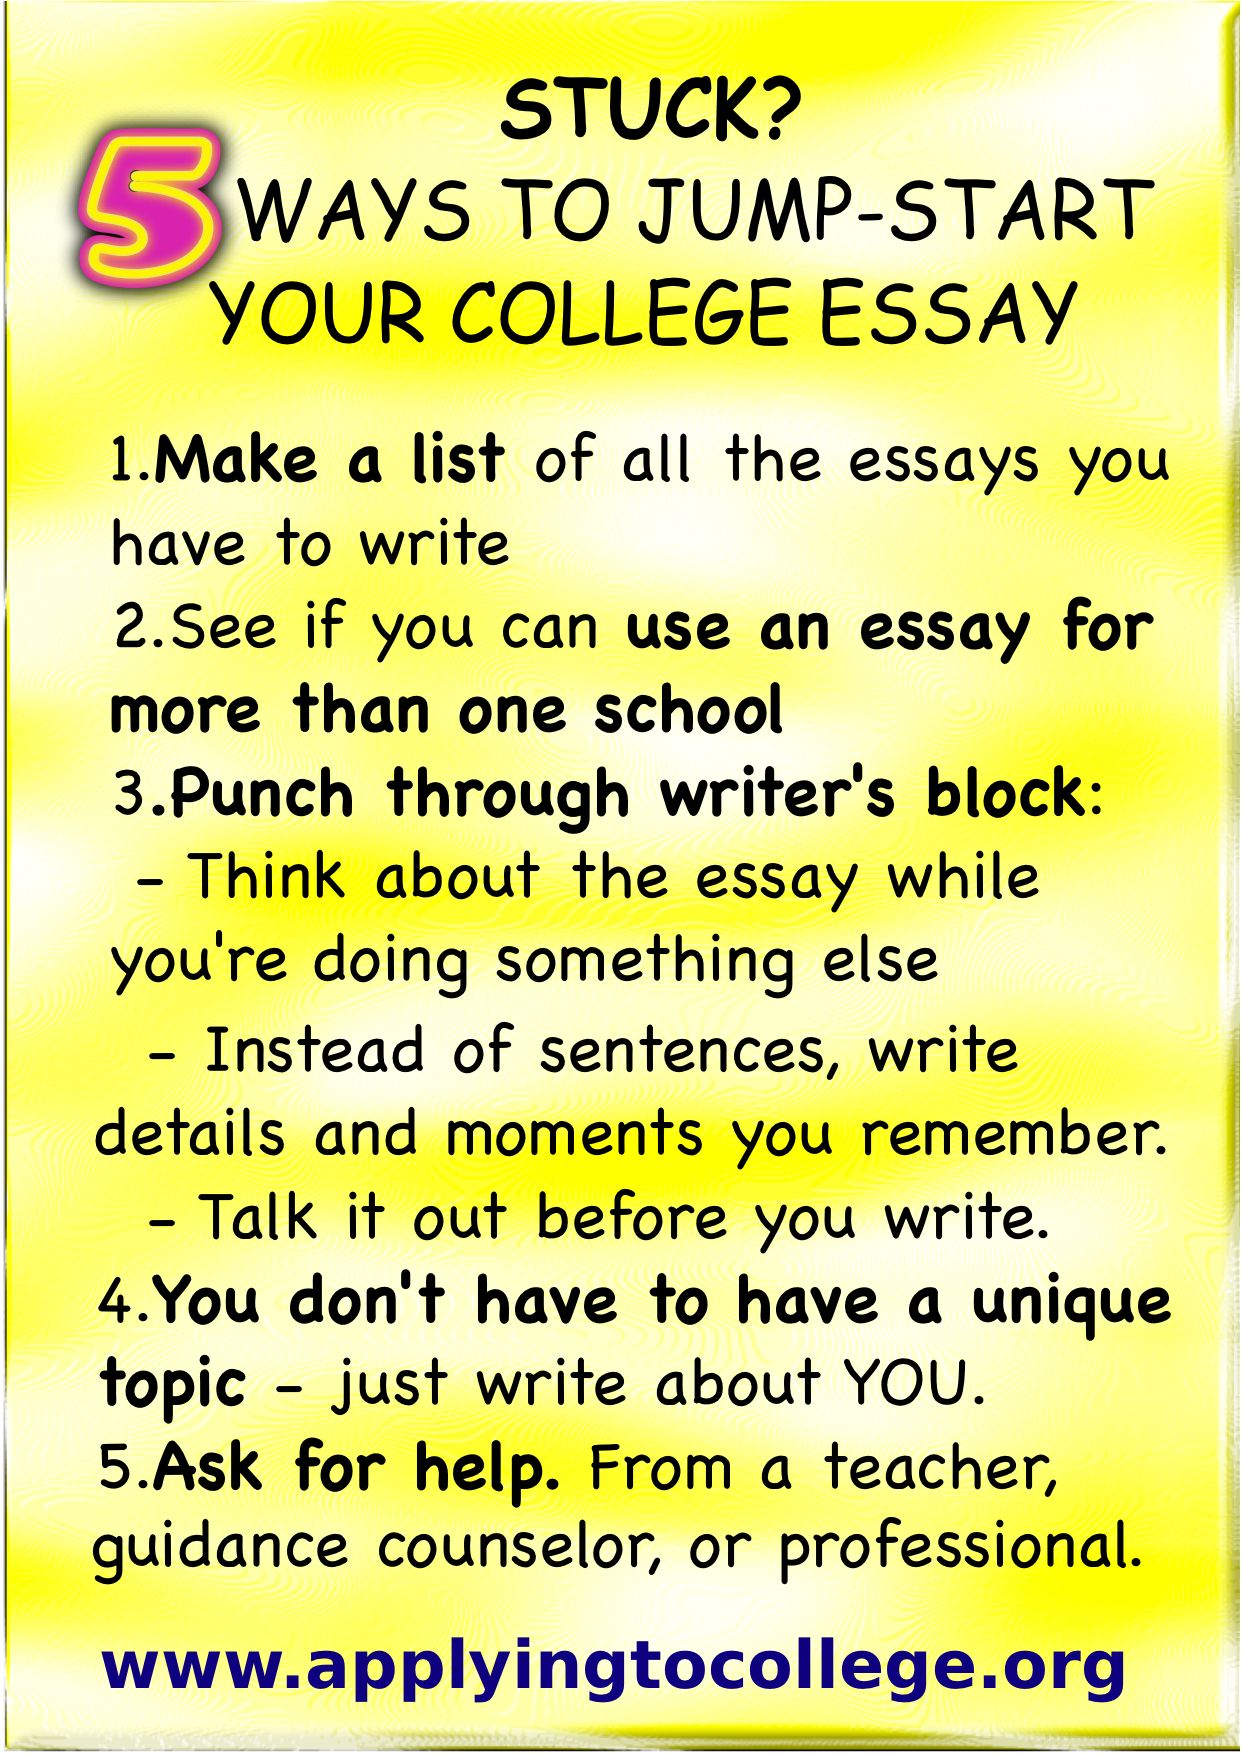 016 Essay Example Writing College Application Rare A How To Write That Stands Out About Yourself Examples Of Uc Essays Full